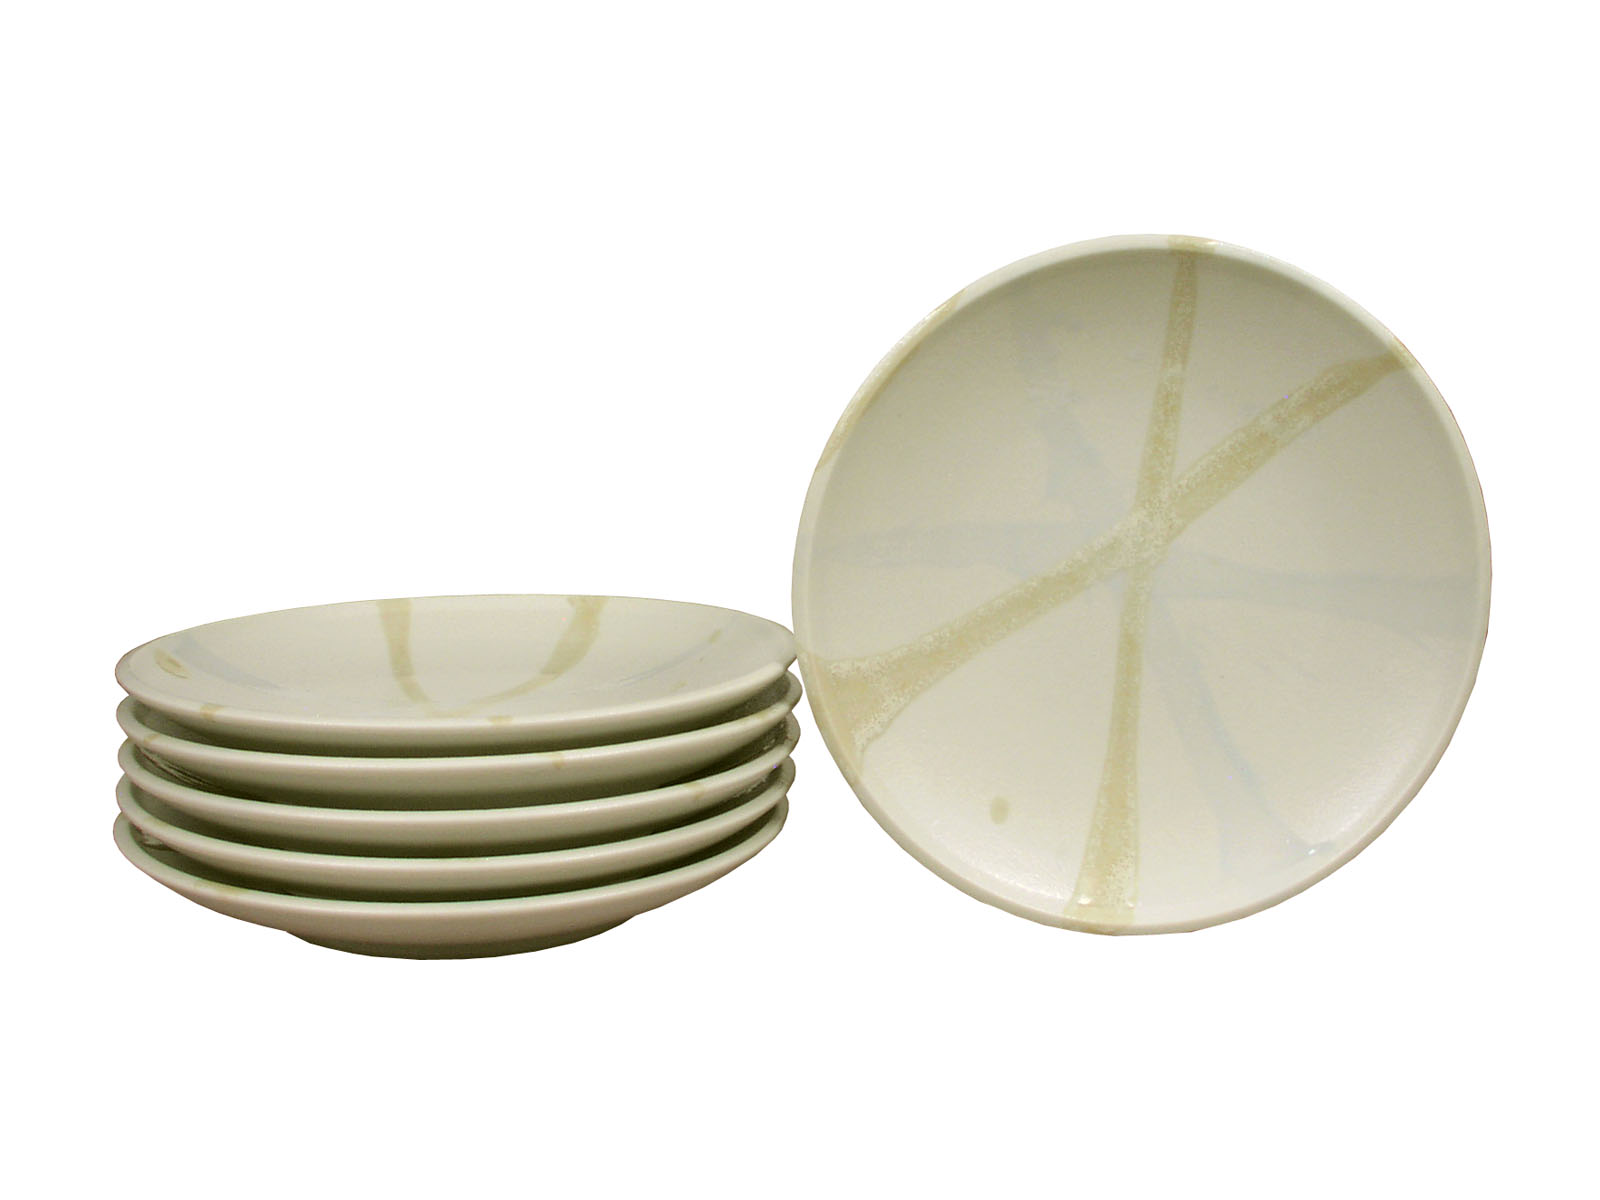 Six Piece Cream and Pastel Japanese Ceramic Plate Set (Only 2 Sets Available)  sc 1 st  Mrs. Lin\u0027s Kitchen & Six Piece Cream and Pastel Japanese Ceramic Plate Set (Only 2 Sets ...